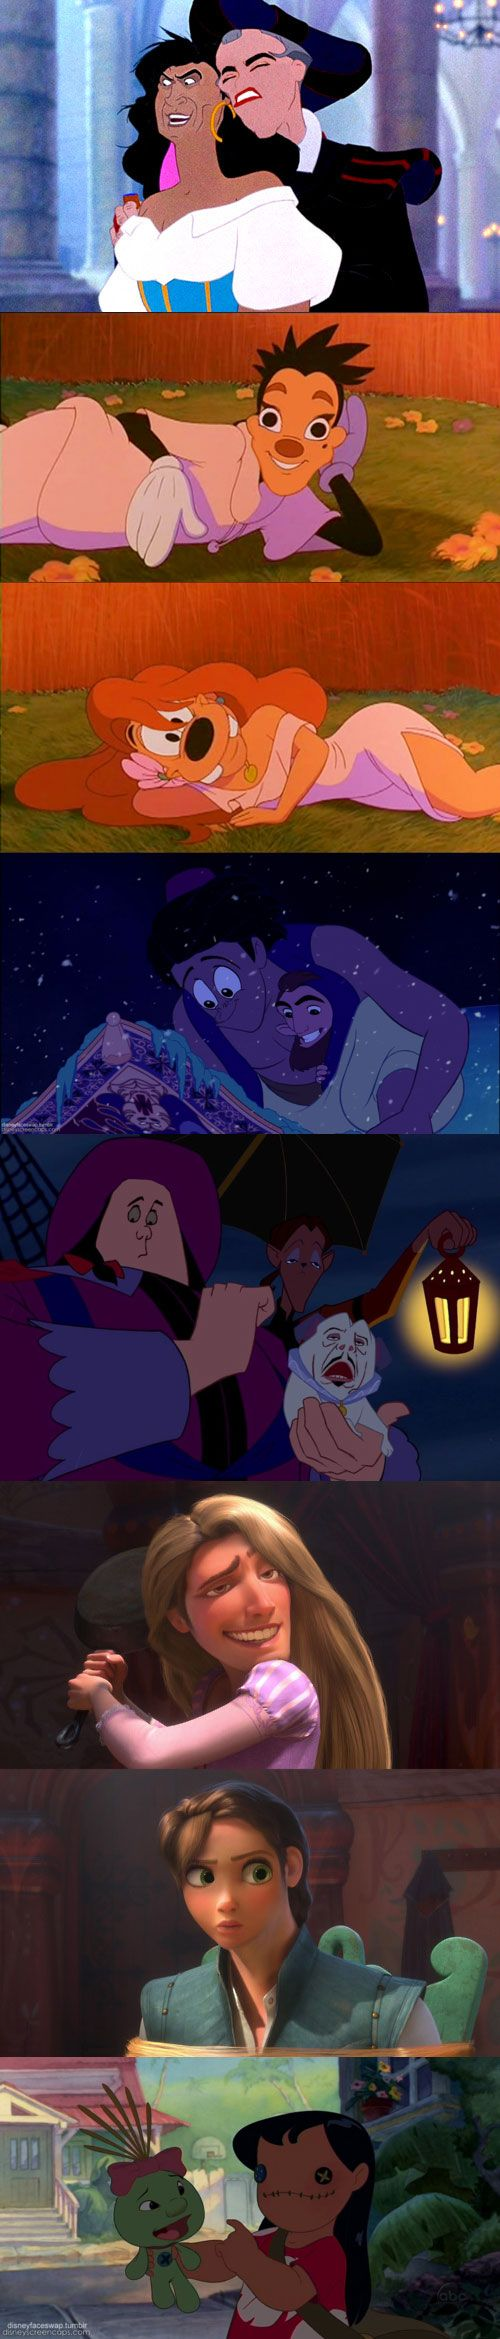 Disney face swaps can be so awkward